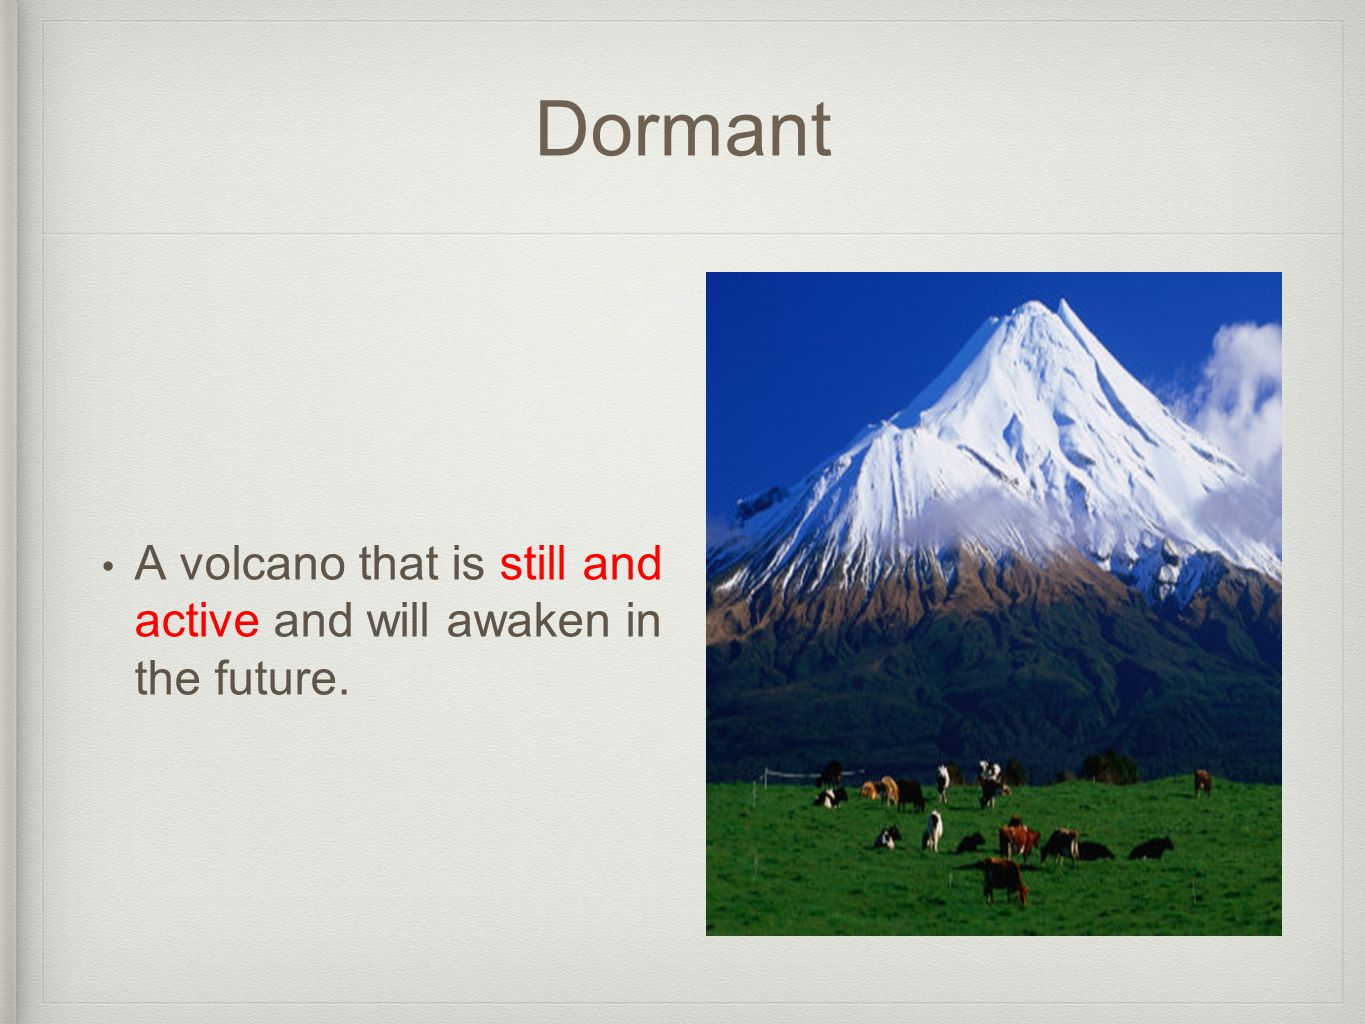 Dormant A volcano that is still and active and will awaken in the future.